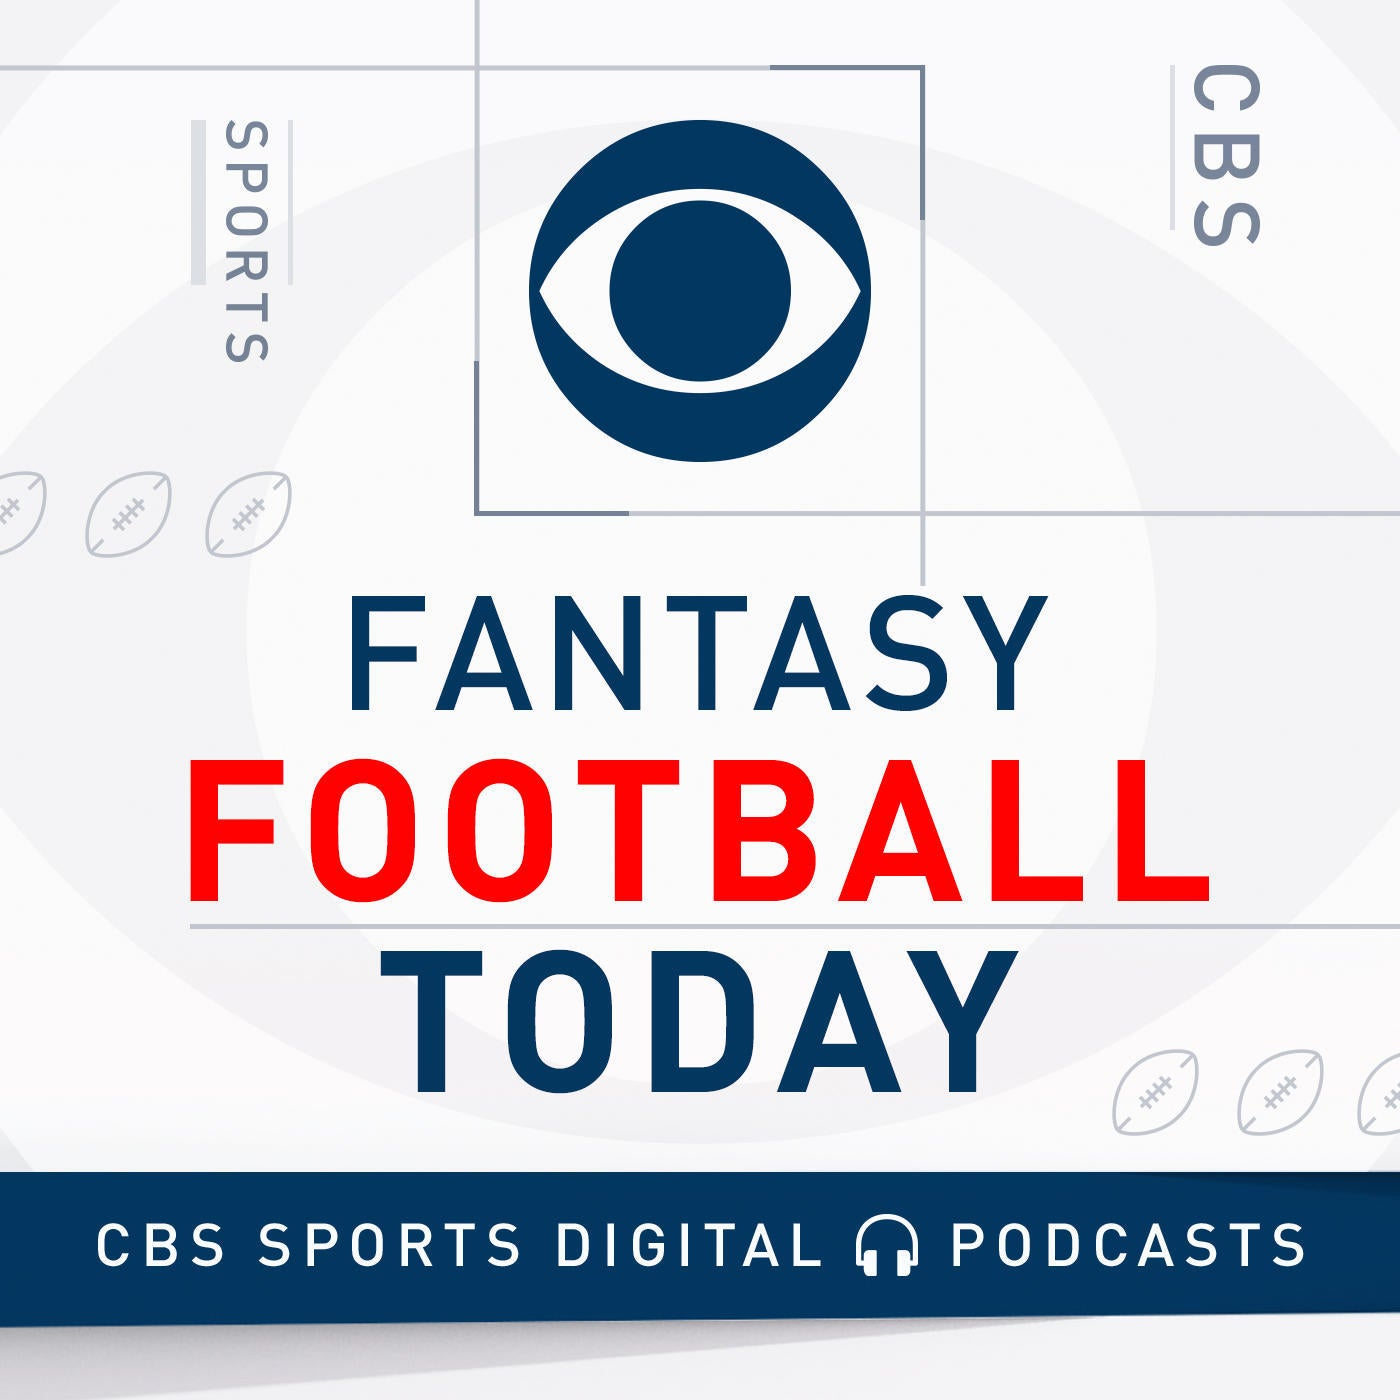 cbs sports tv - cbssports